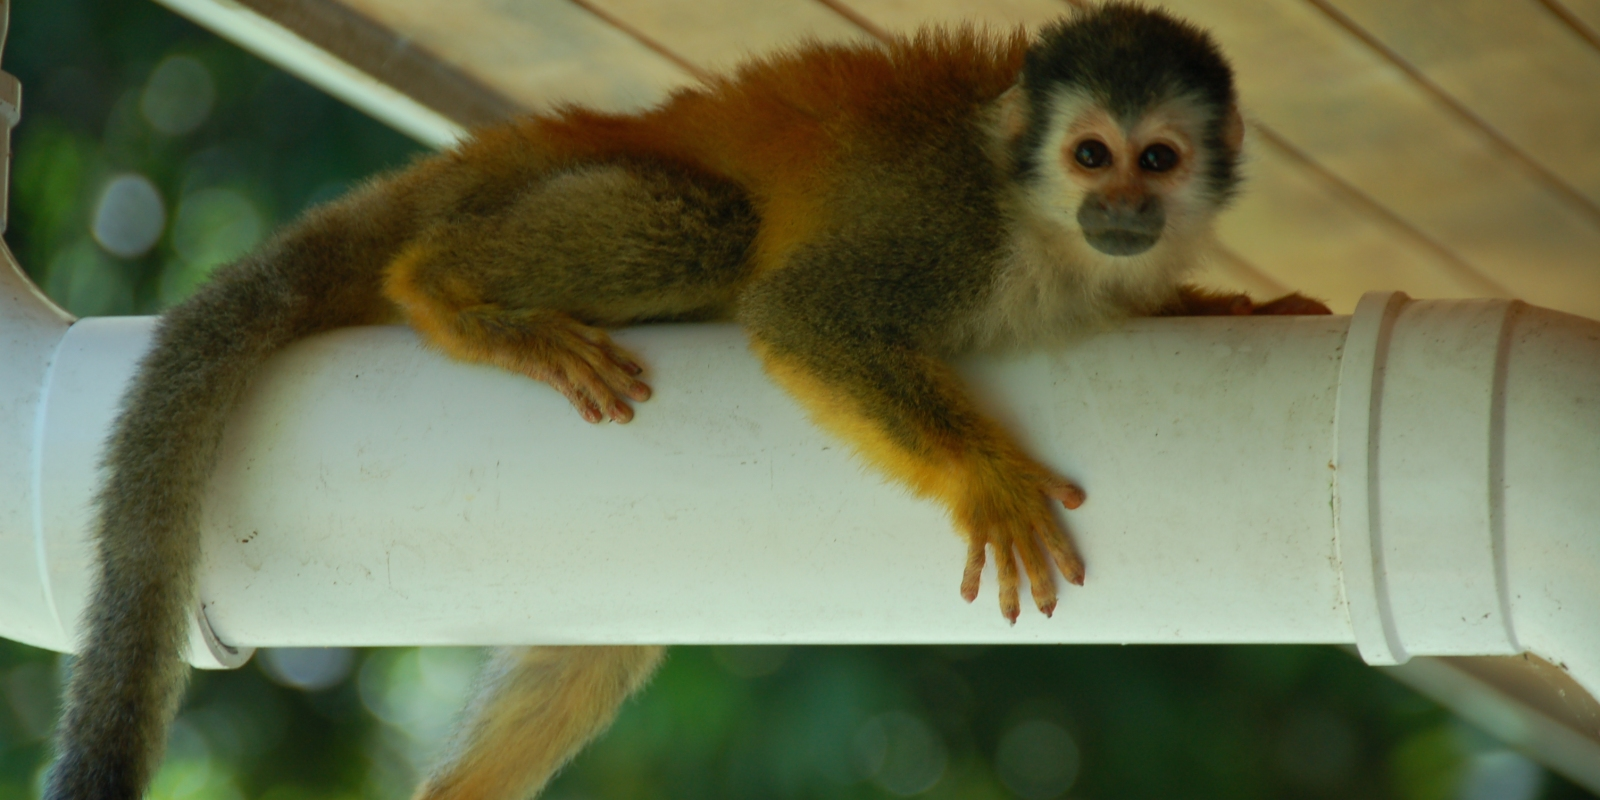 Monkey on a drain pipe in Costa Rica